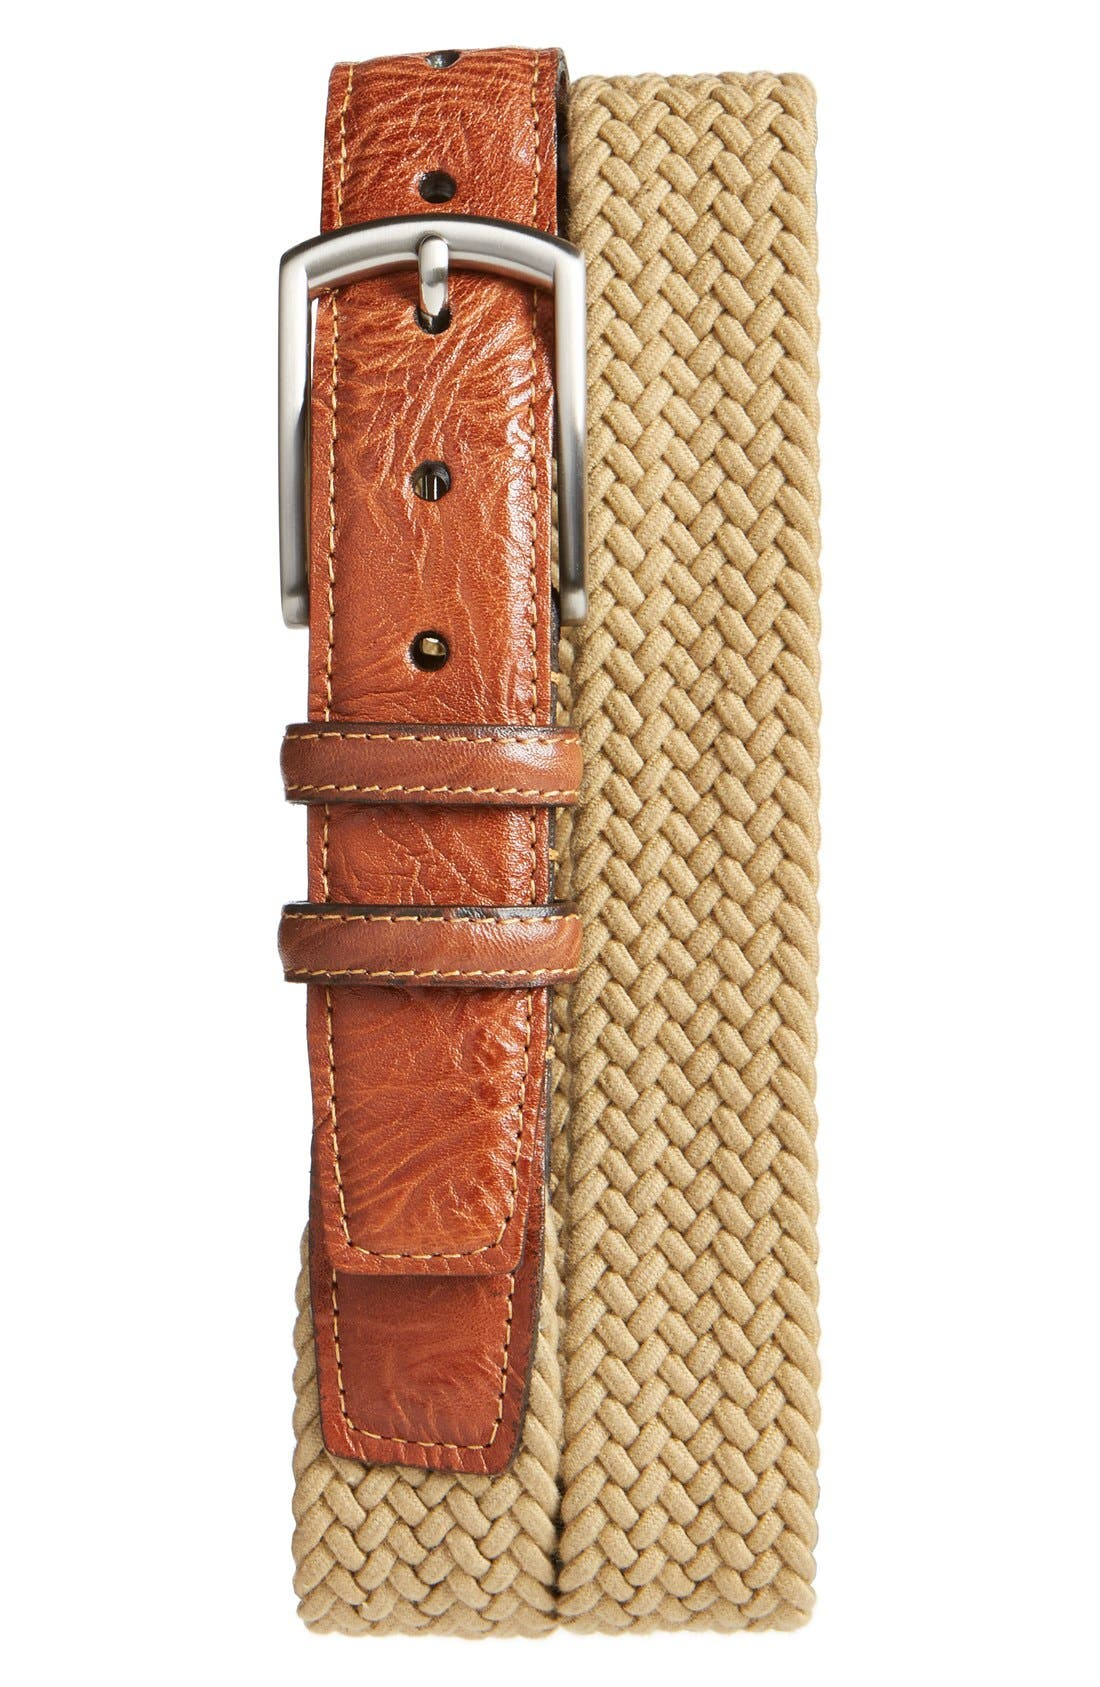 Richly grained leather tabs detail a casually handsome braided belt made in stretchy Italian cotton and secured with a brushed nickel buckle. Style Name: Torino Braided Stretch Cotton Belt. Style Number: 5109139. Available in stores.